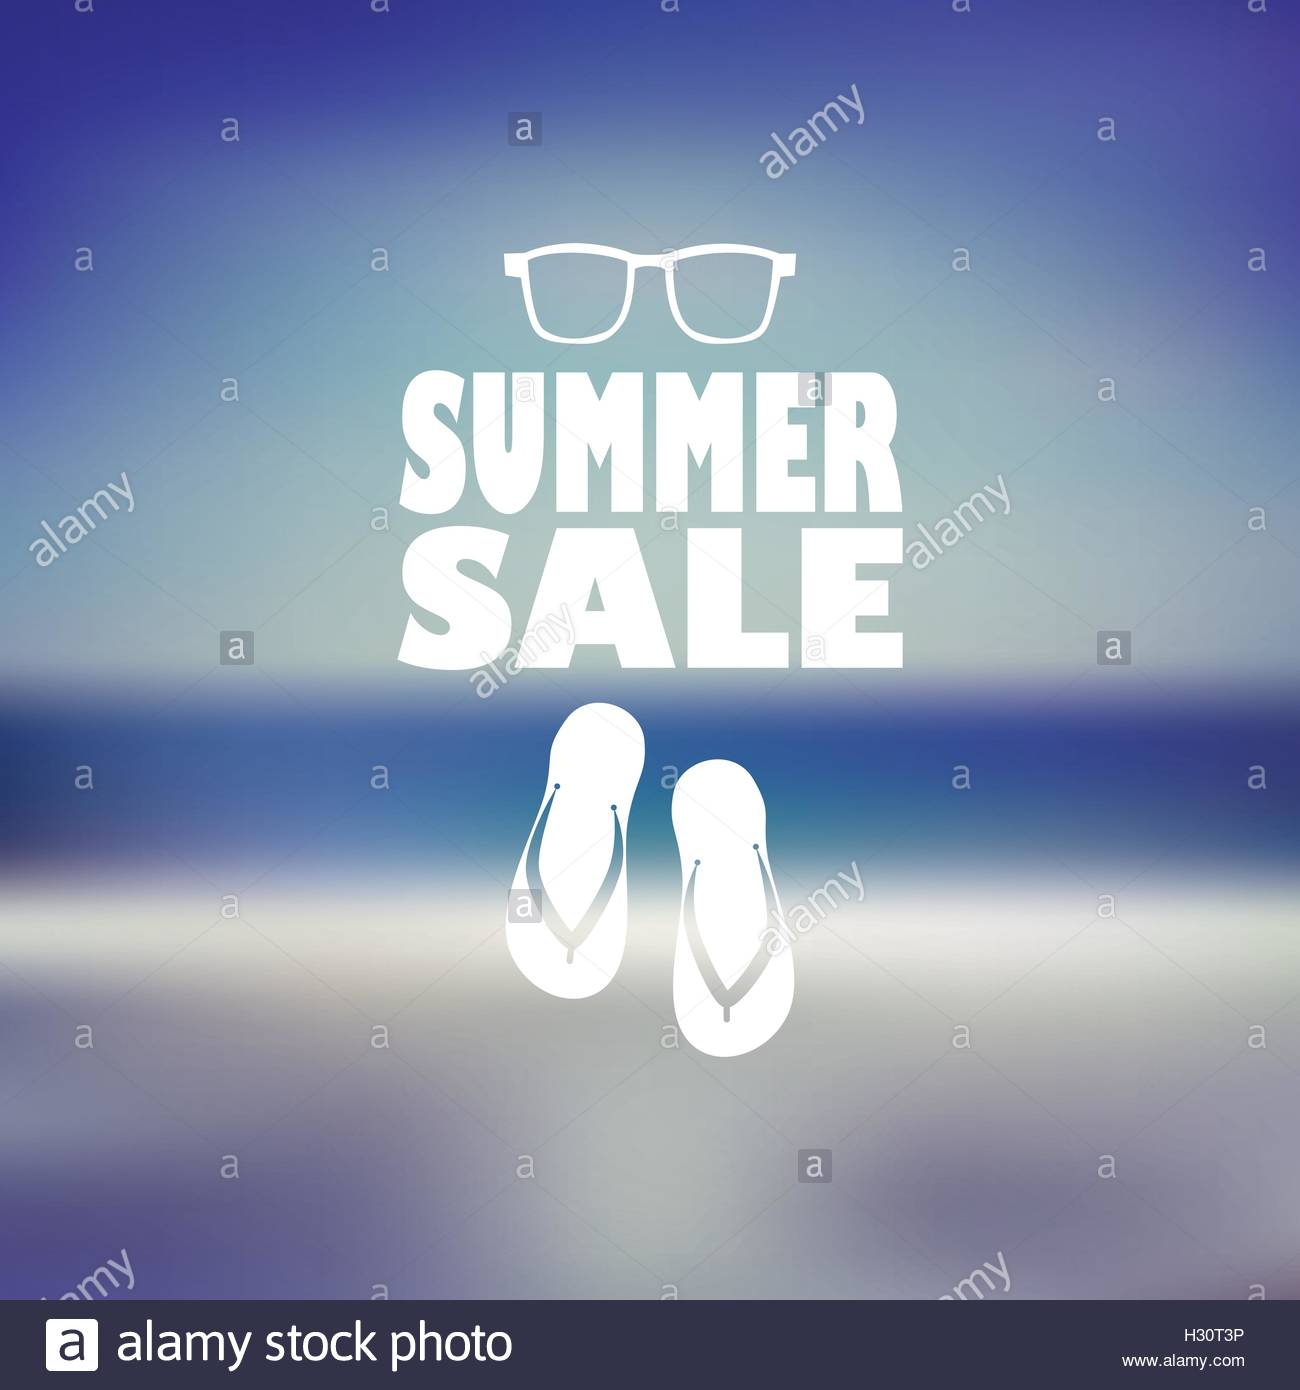 96c0fca05 Summer sale poster with flip flops and sunglasses. Beach blurred background  flyer for promotion